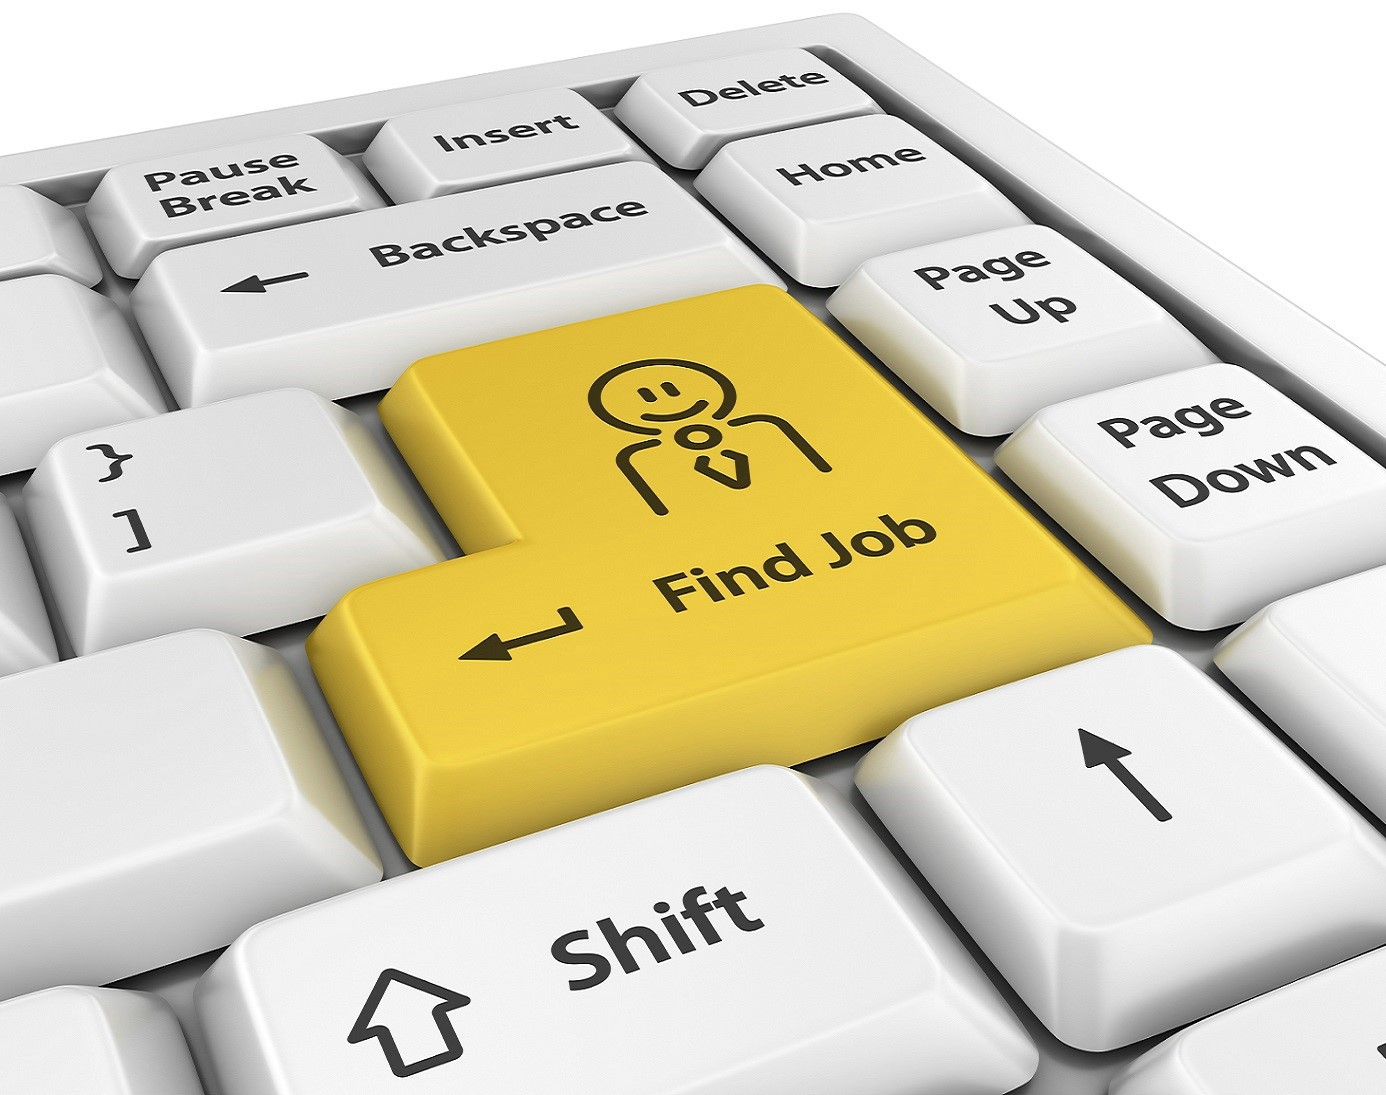 4 Amazing Benefits of Using On-line Portals to Find Jobs in India